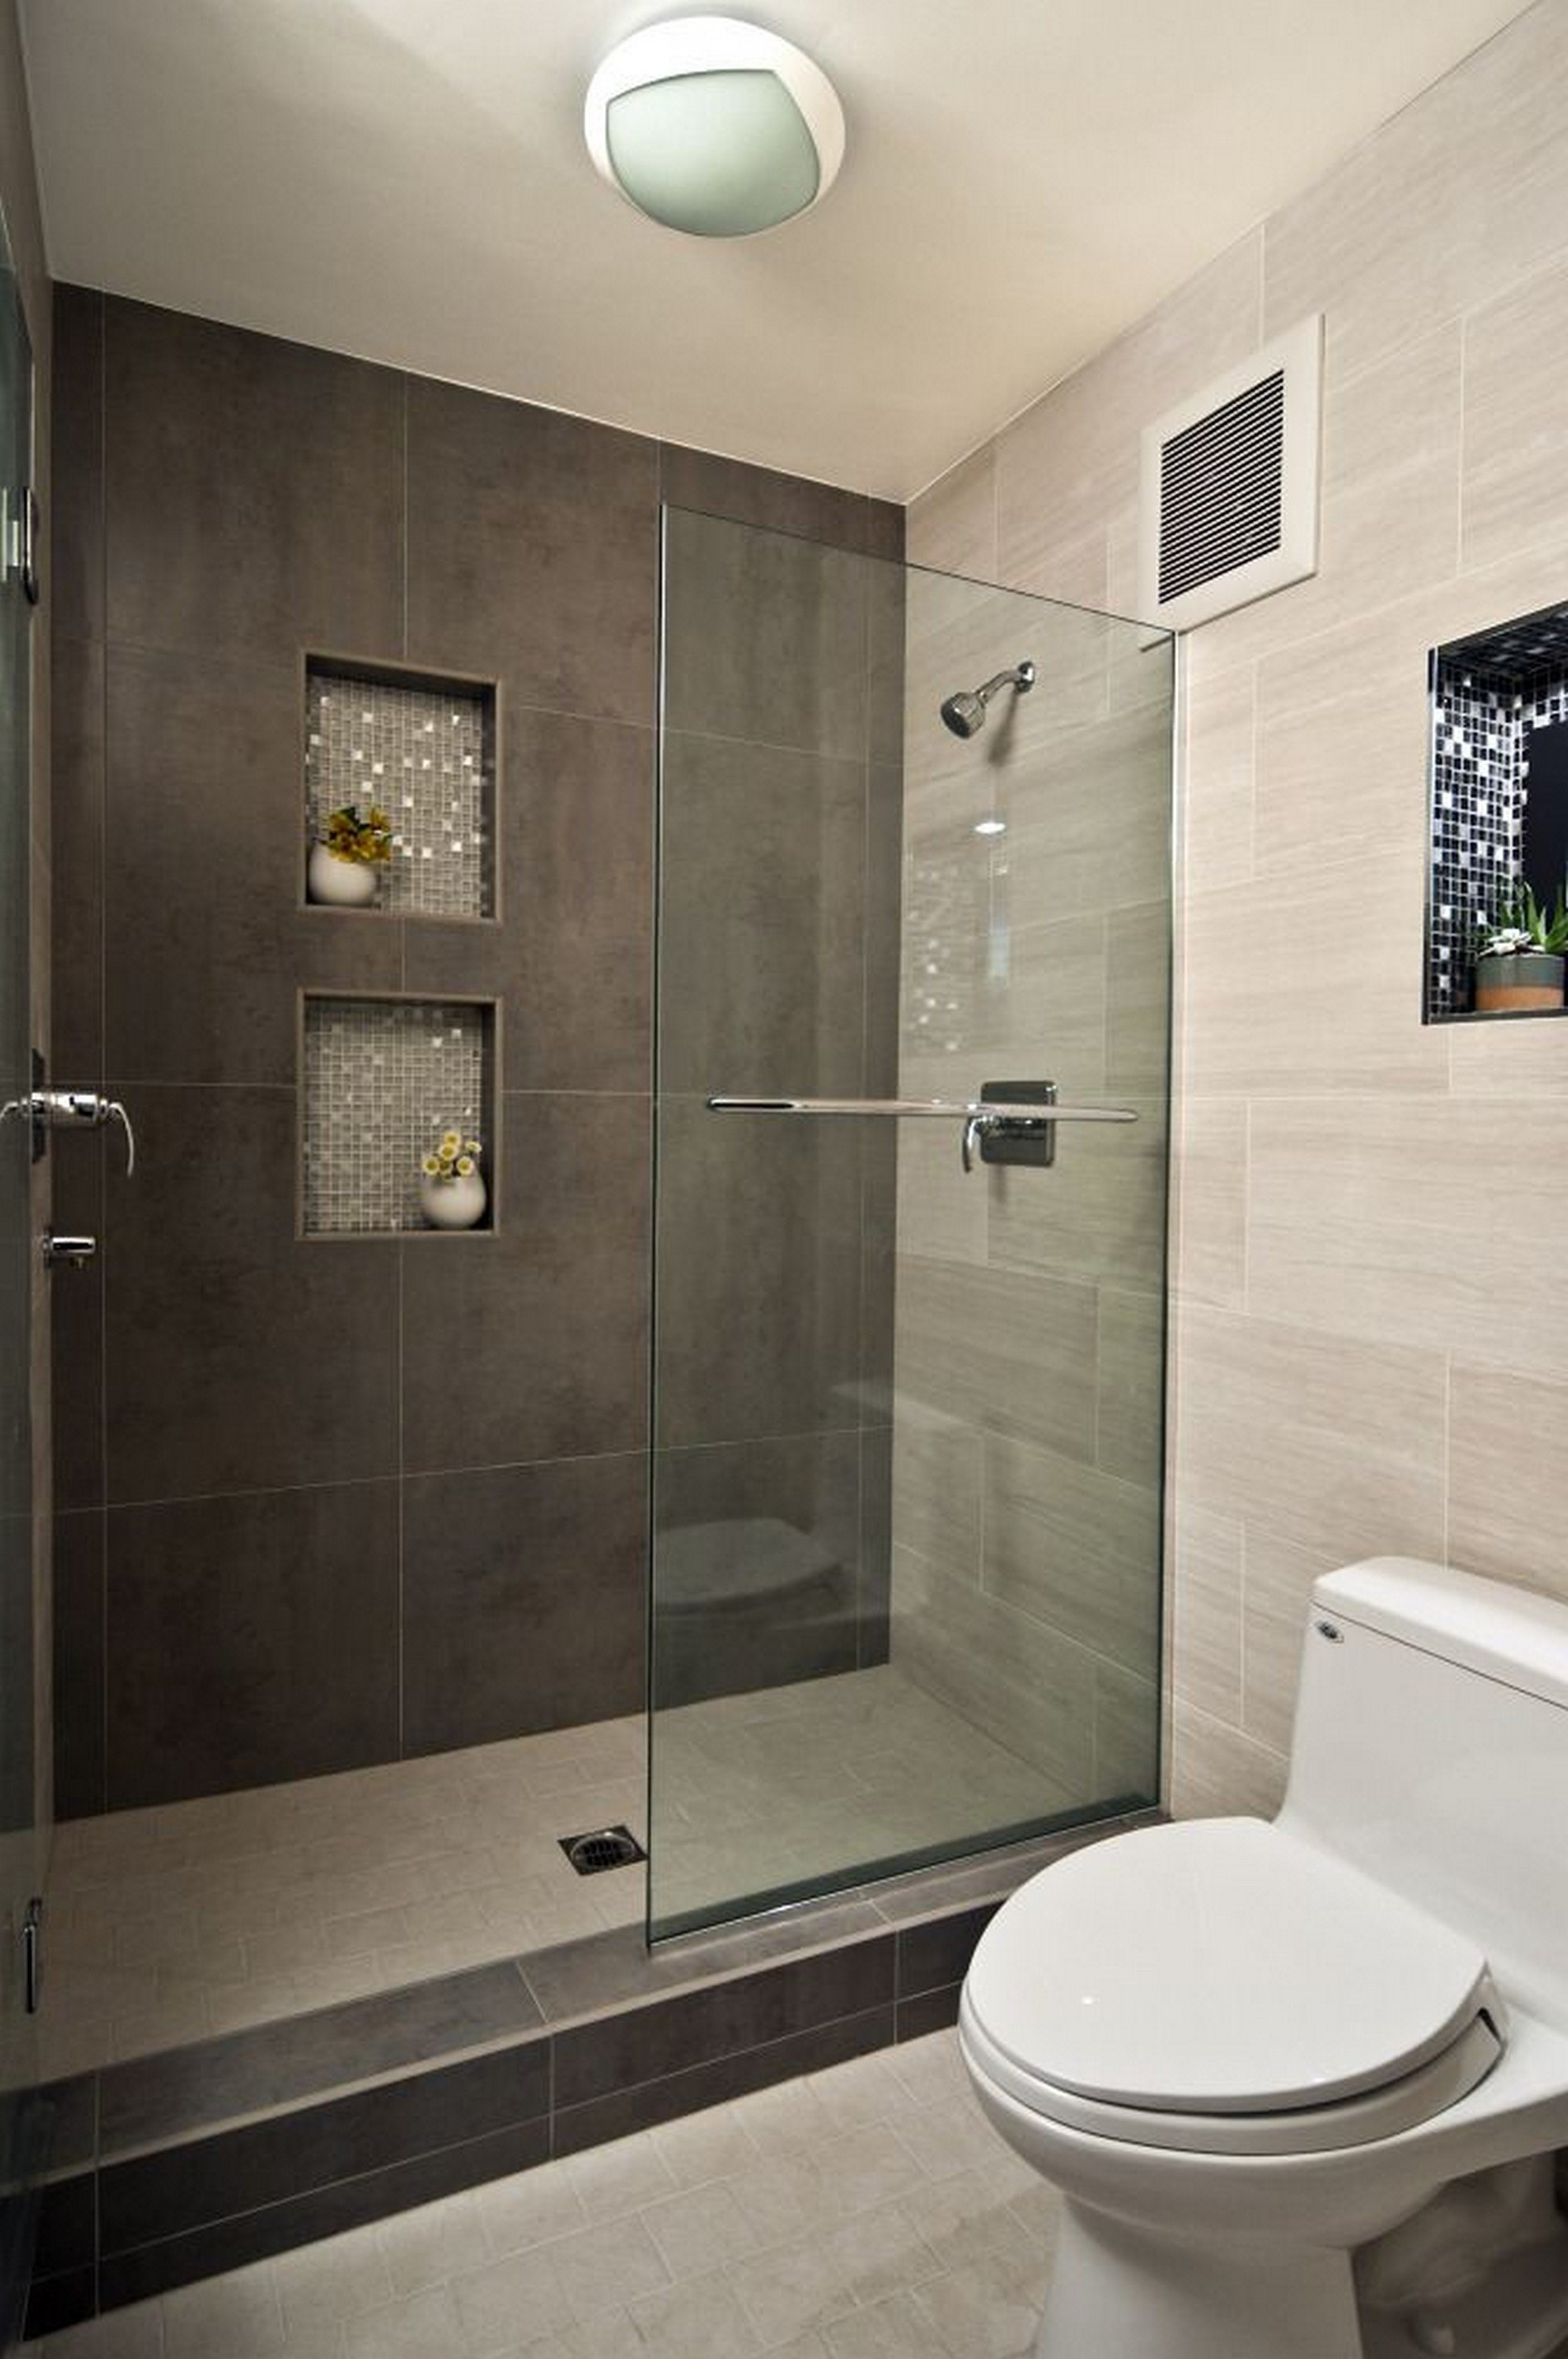 10 Attractive Walk In Shower Remodel Ideas bathroom remodel ideas walk in shower small bathroom walk in shower 2020